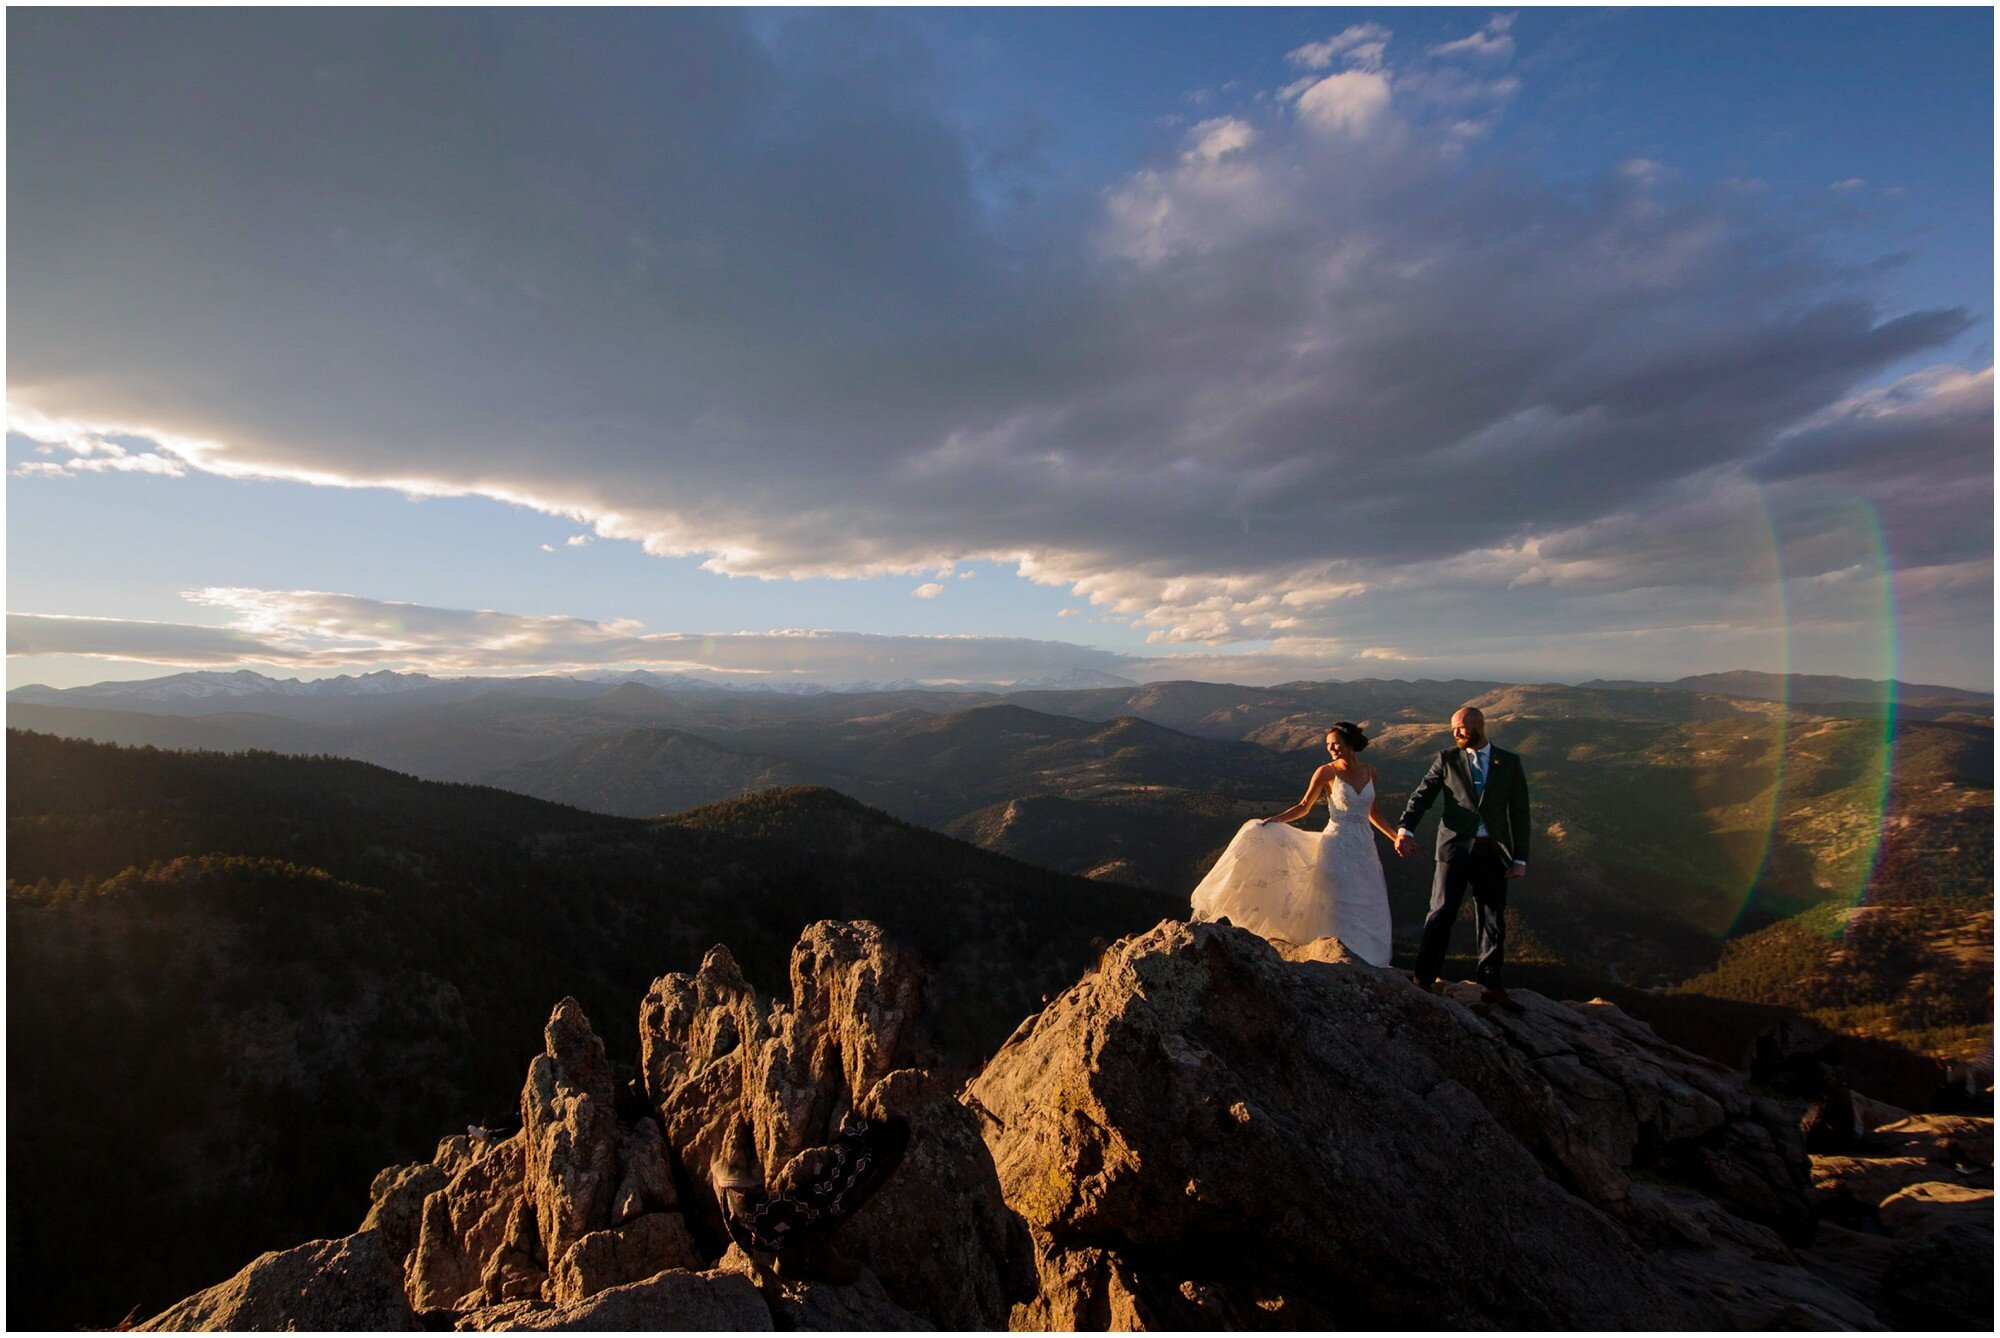 Colorado sunset mountain wedding photo